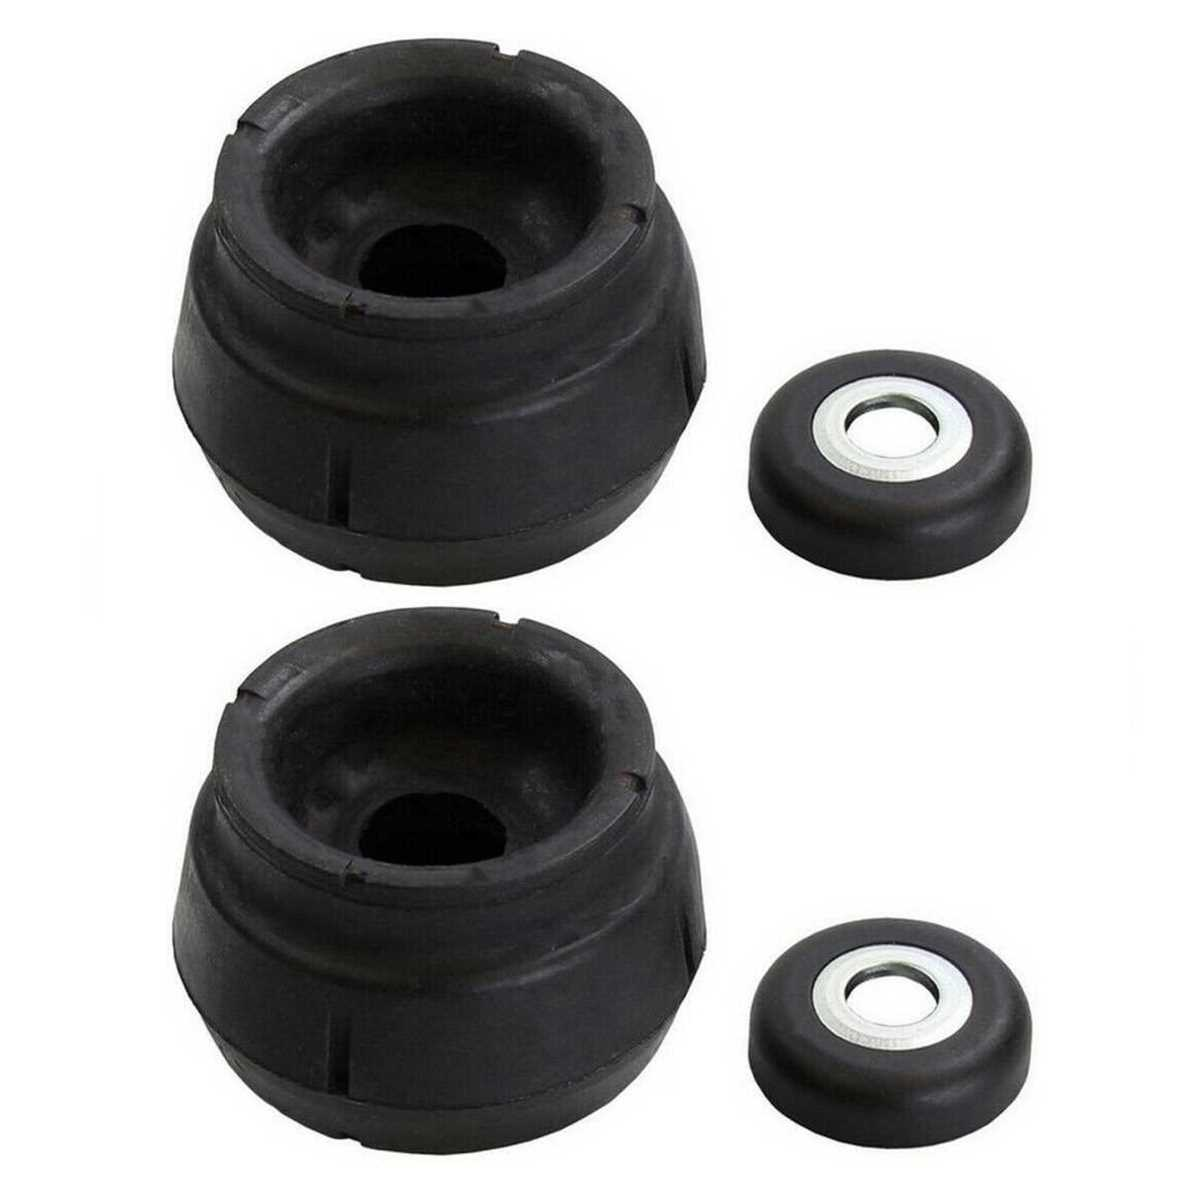 AutoShack KM1004907PR Front Strut Mount Pair 2 Pieces Fits Driver and Passenger Side